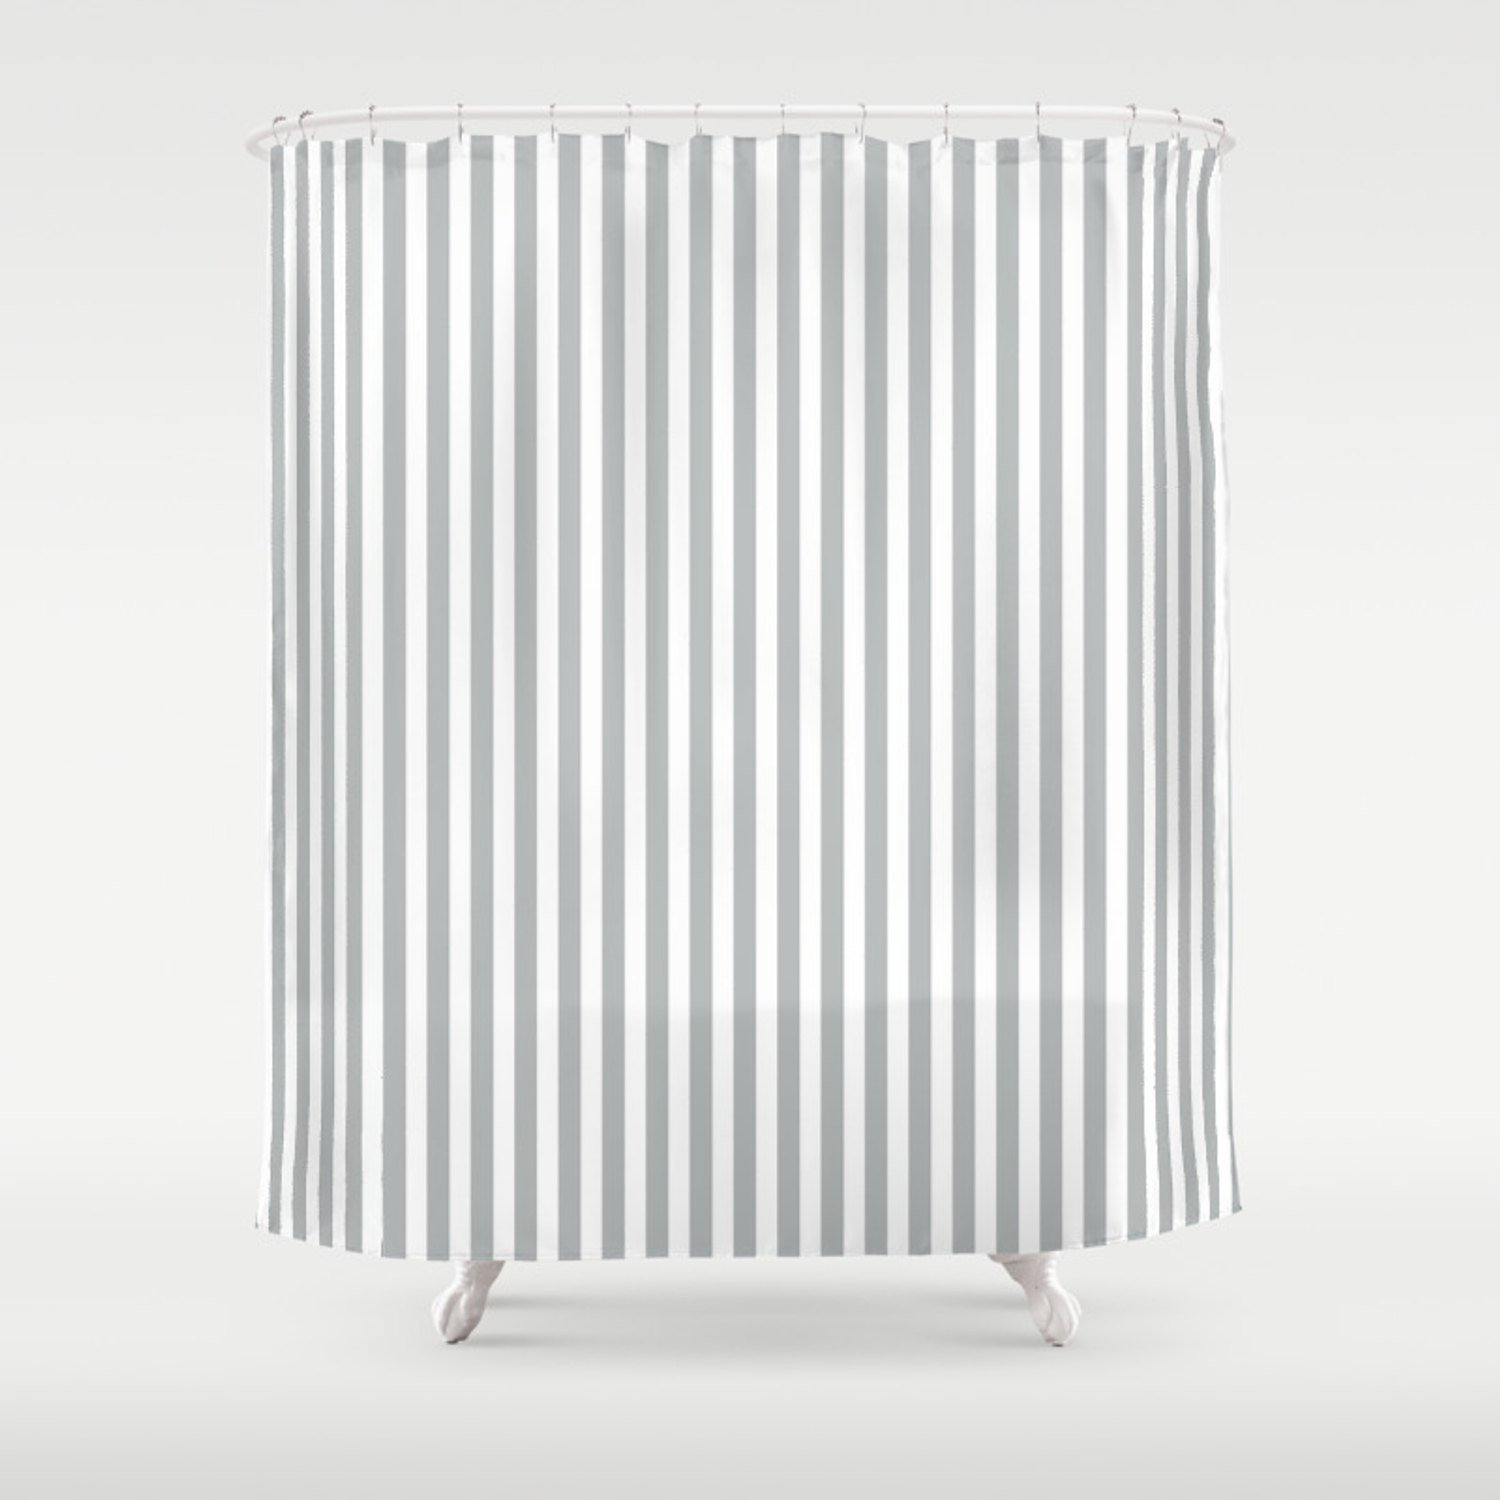 Silver Gray And White Vertical Pin Stripes Shower Curtain